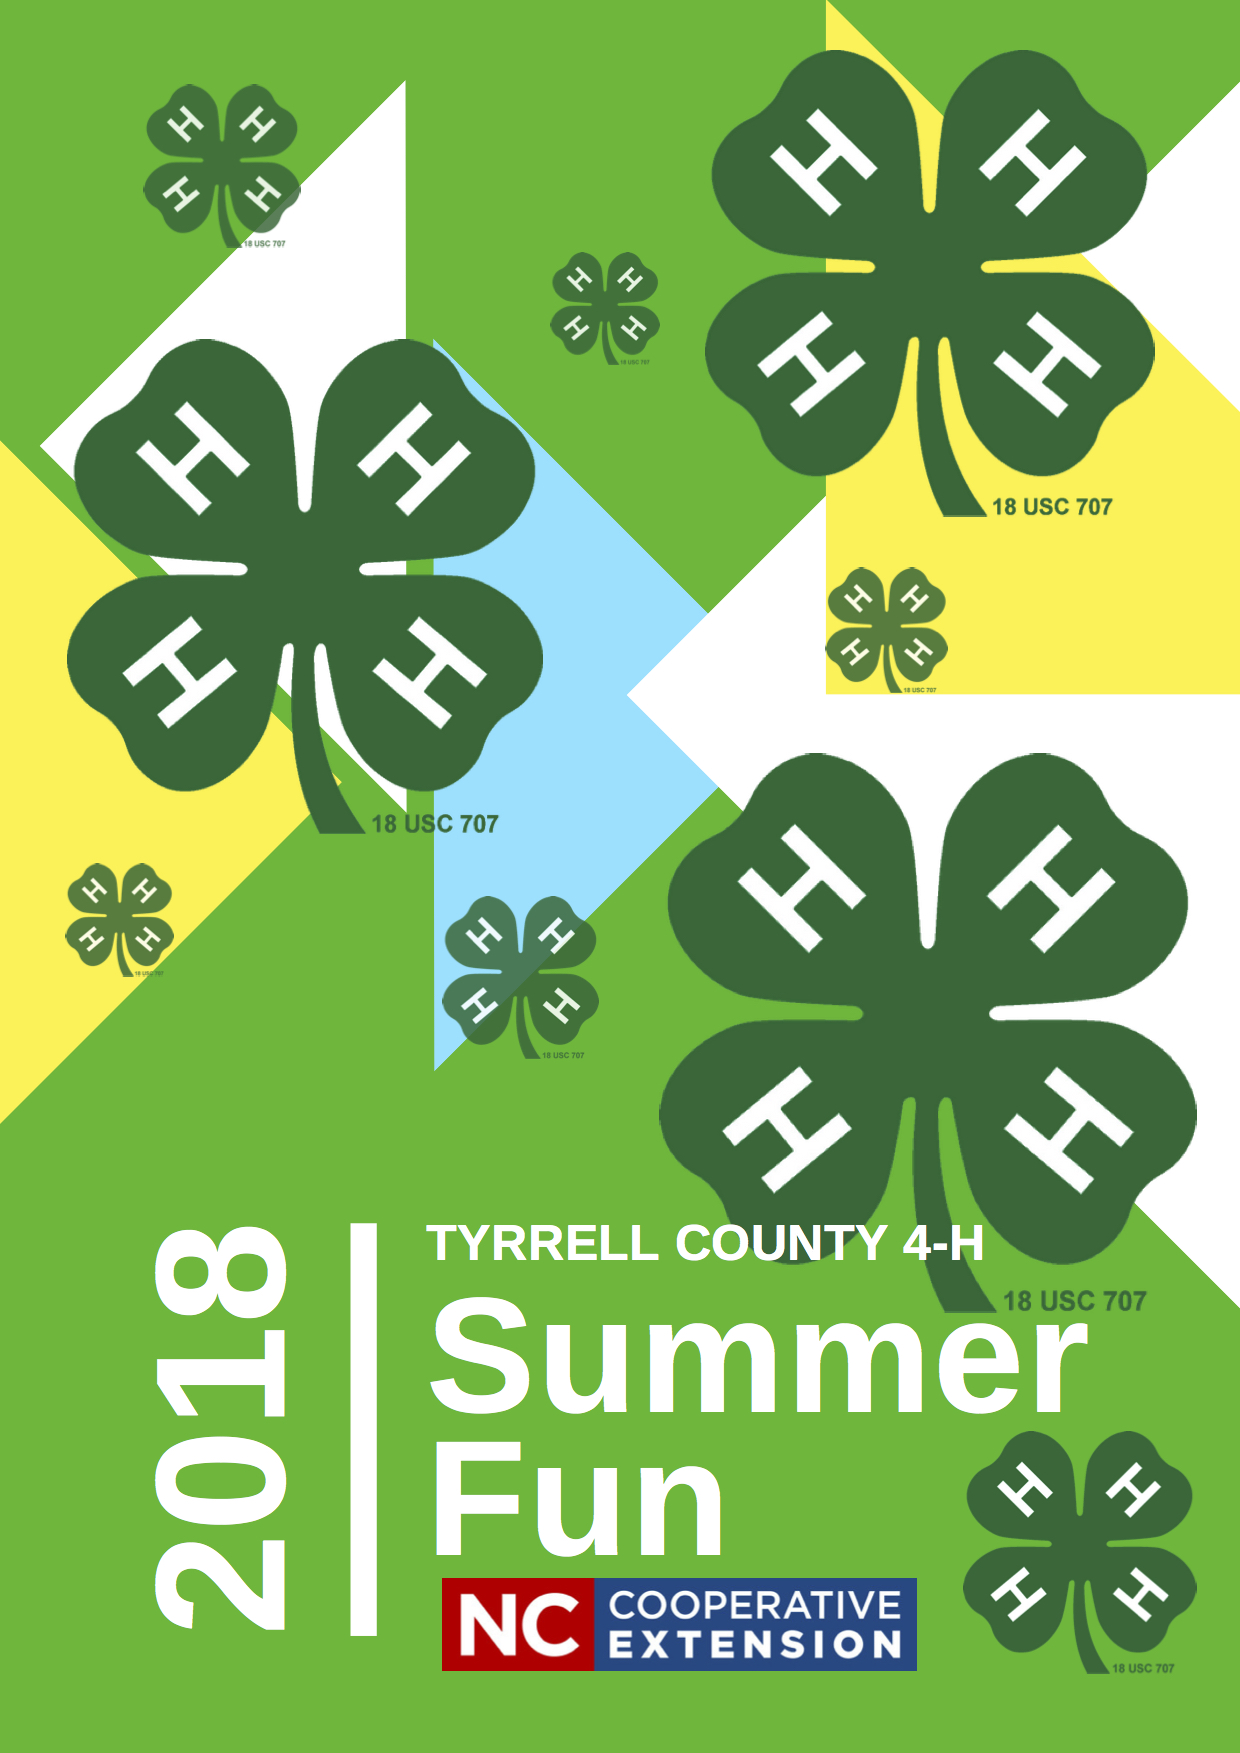 4-H Summer Fun flyer